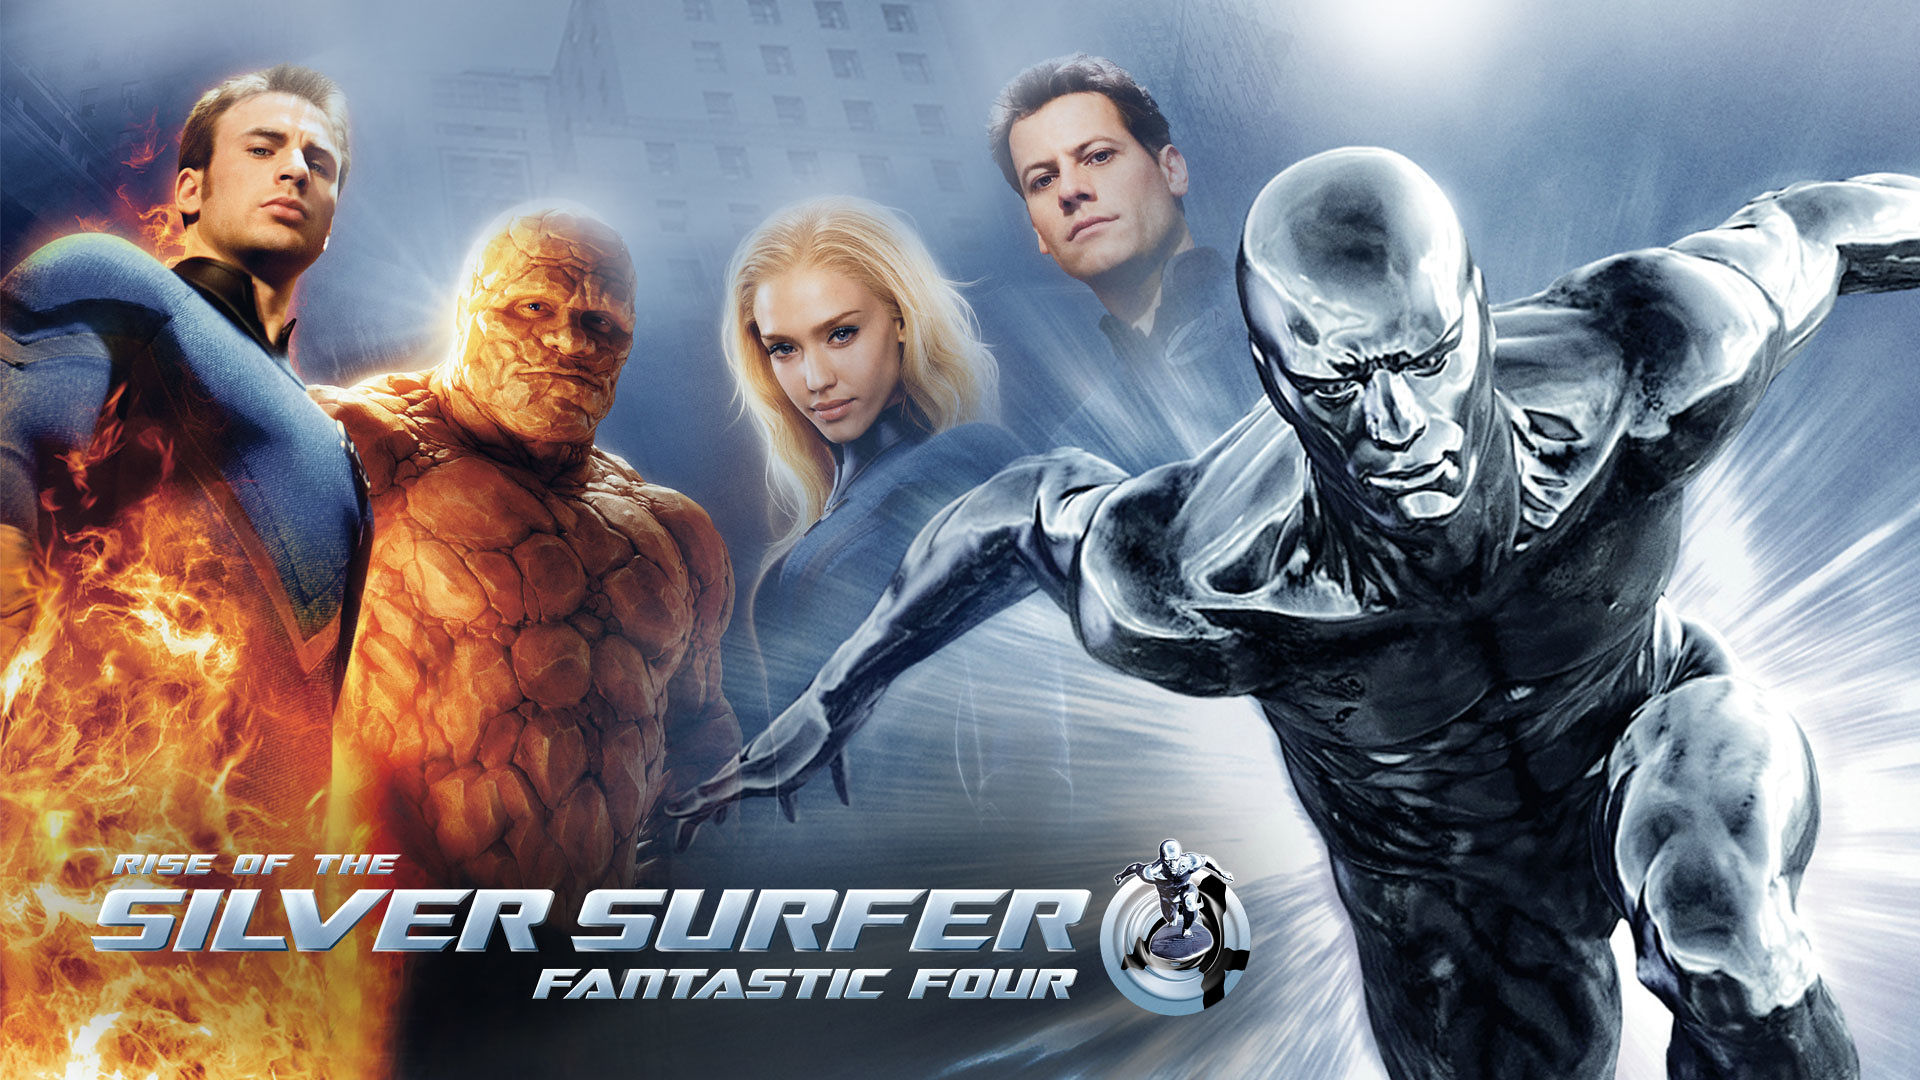 Adapted from 'Fantastic Four: Rise of the Silver Surfer'.